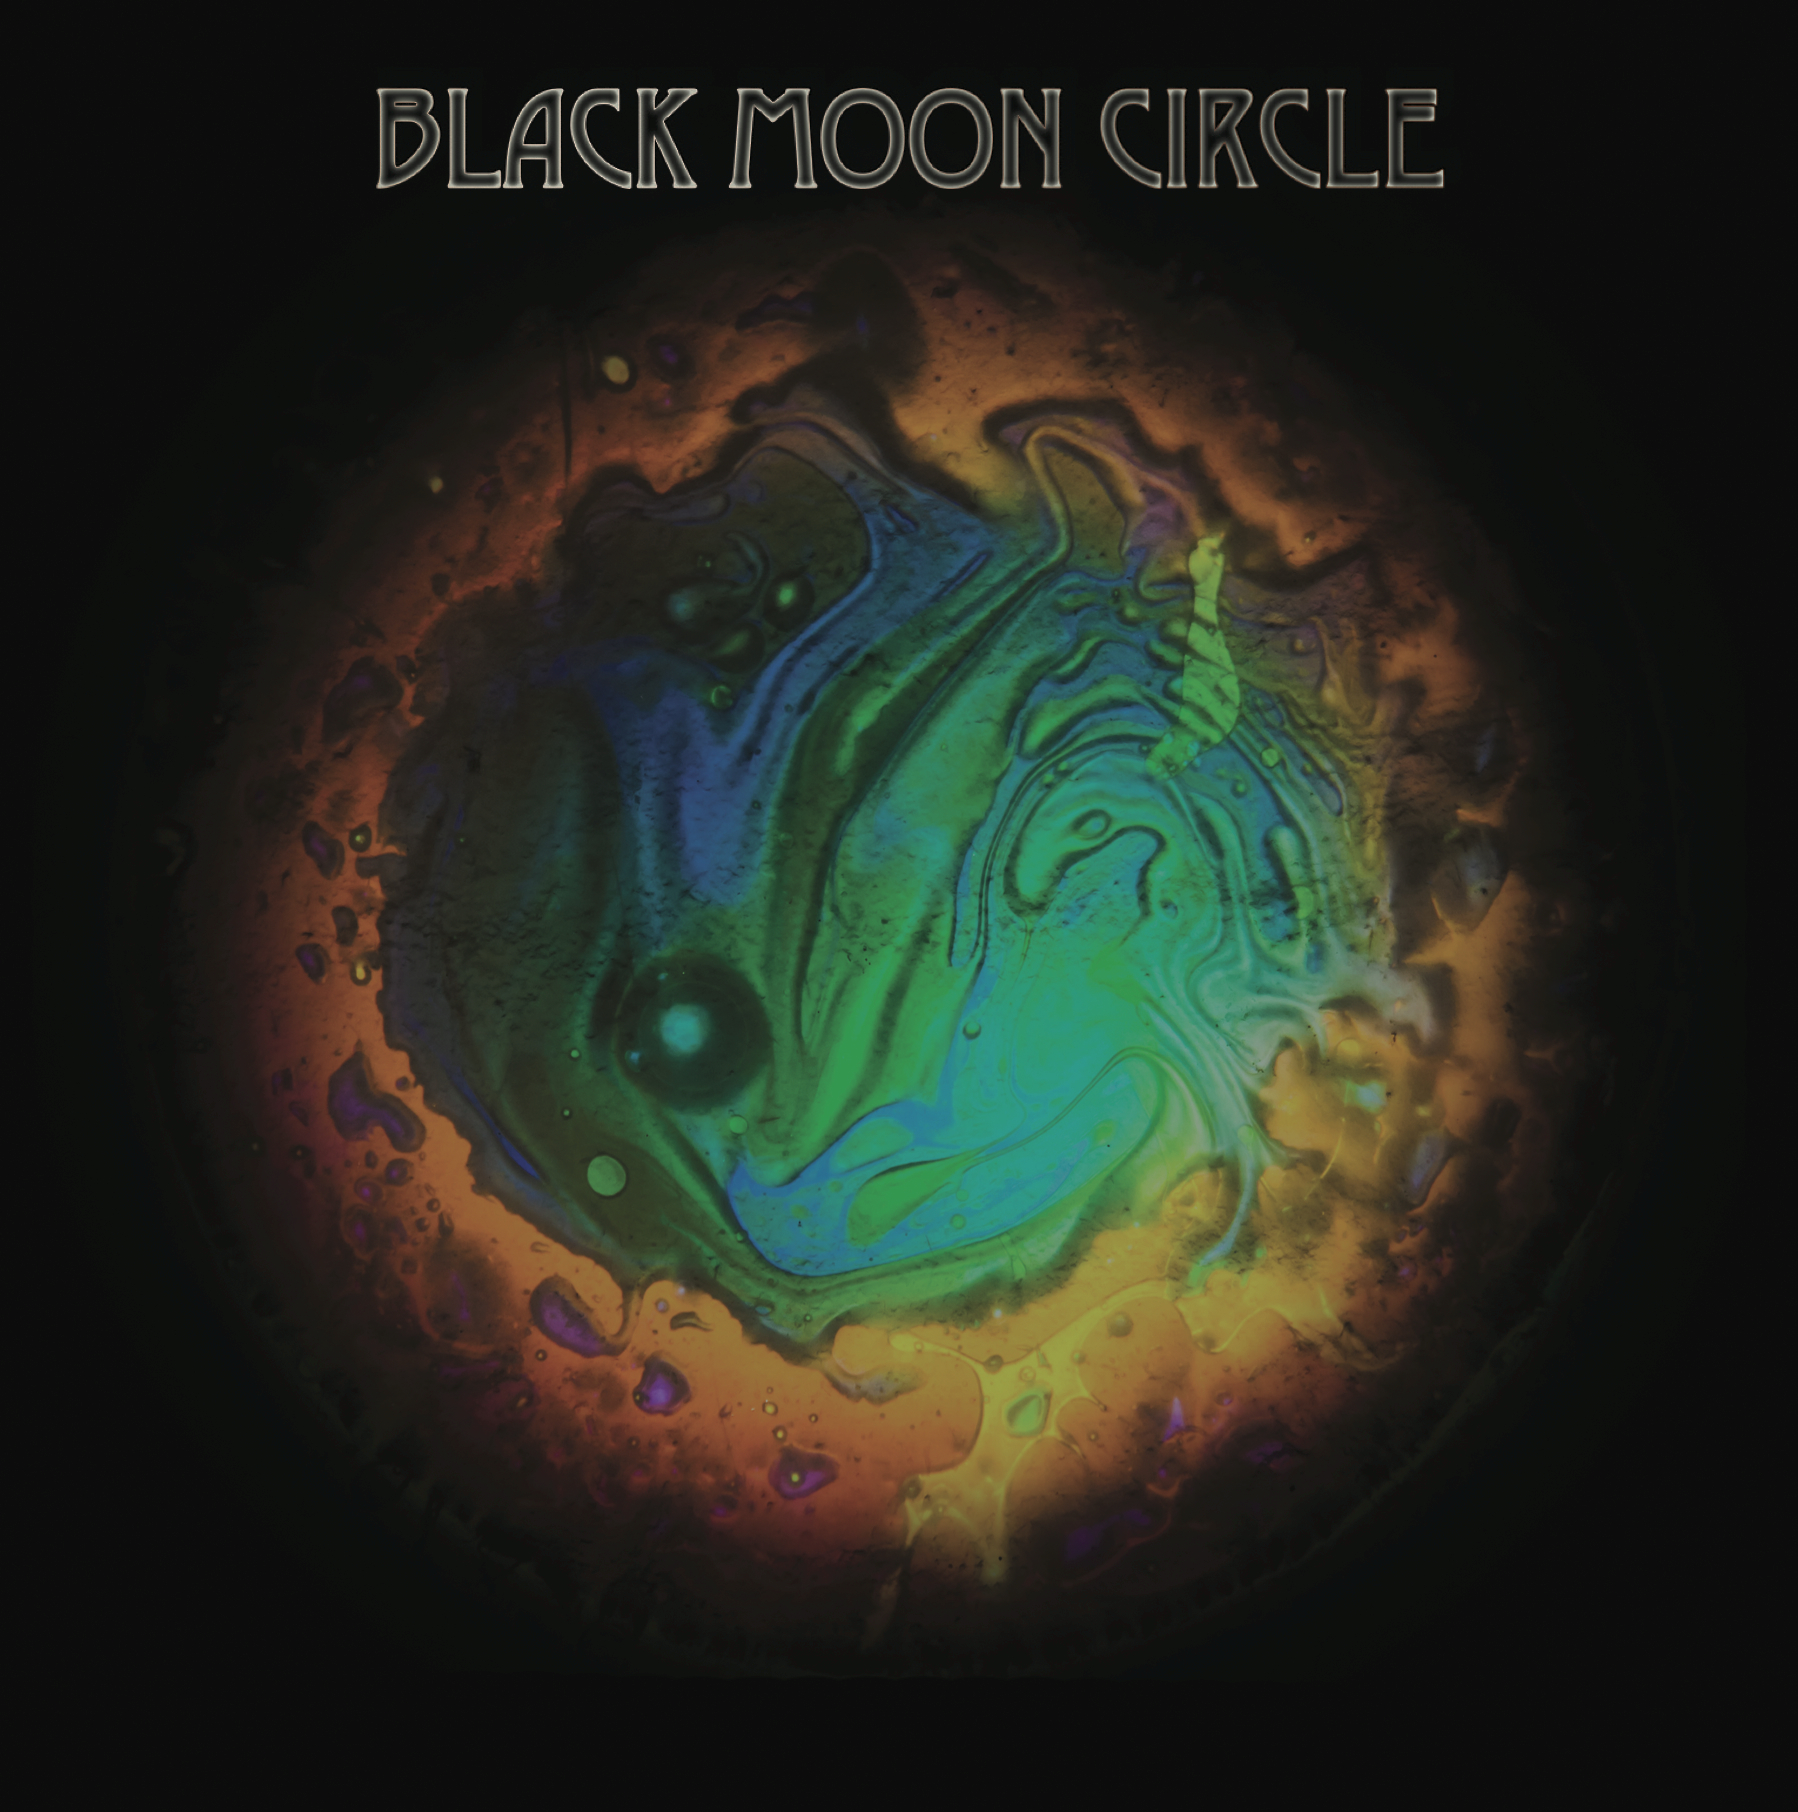 Black Moon Circle - The Studio Jams Vol 1 Yellow Nebula in the Sky